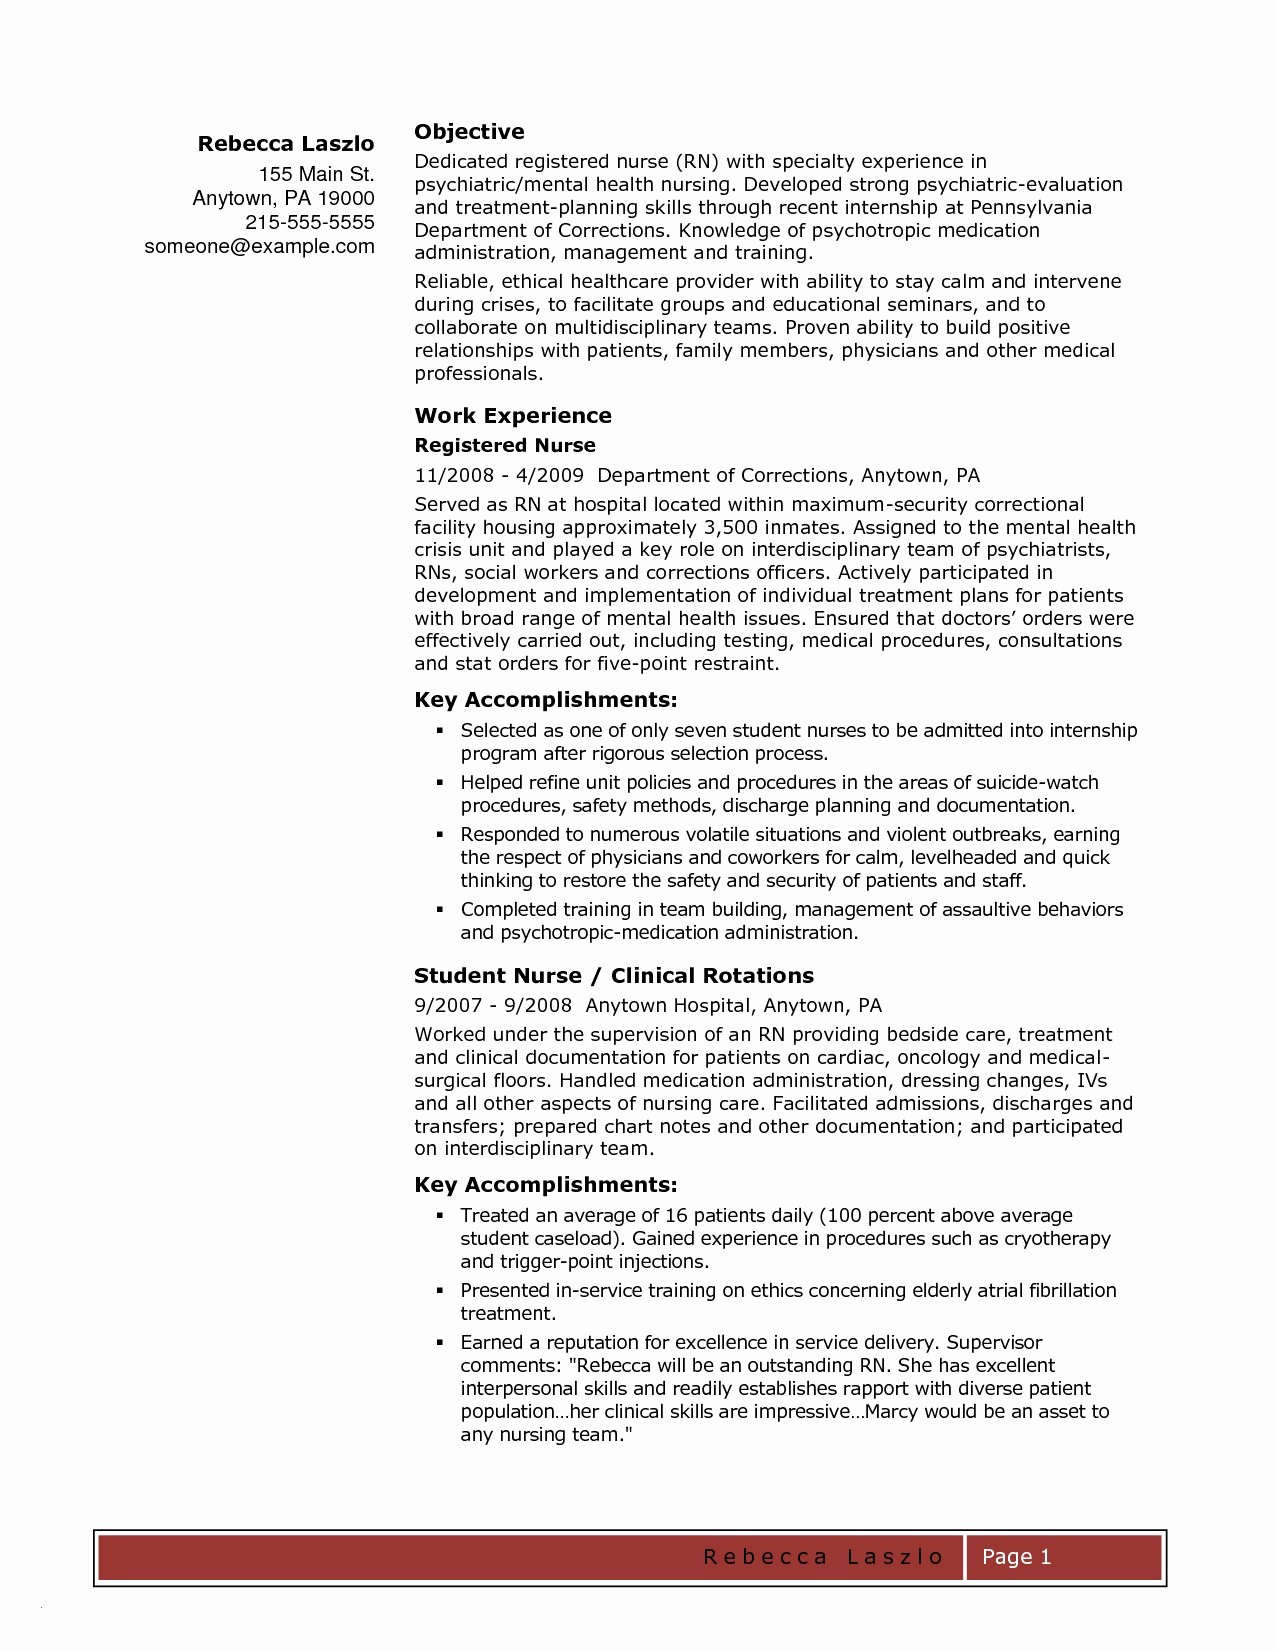 Charge Nurse Resume Examples - Dialysis Technician Resume Valid Dialysis Technician Resume Charge